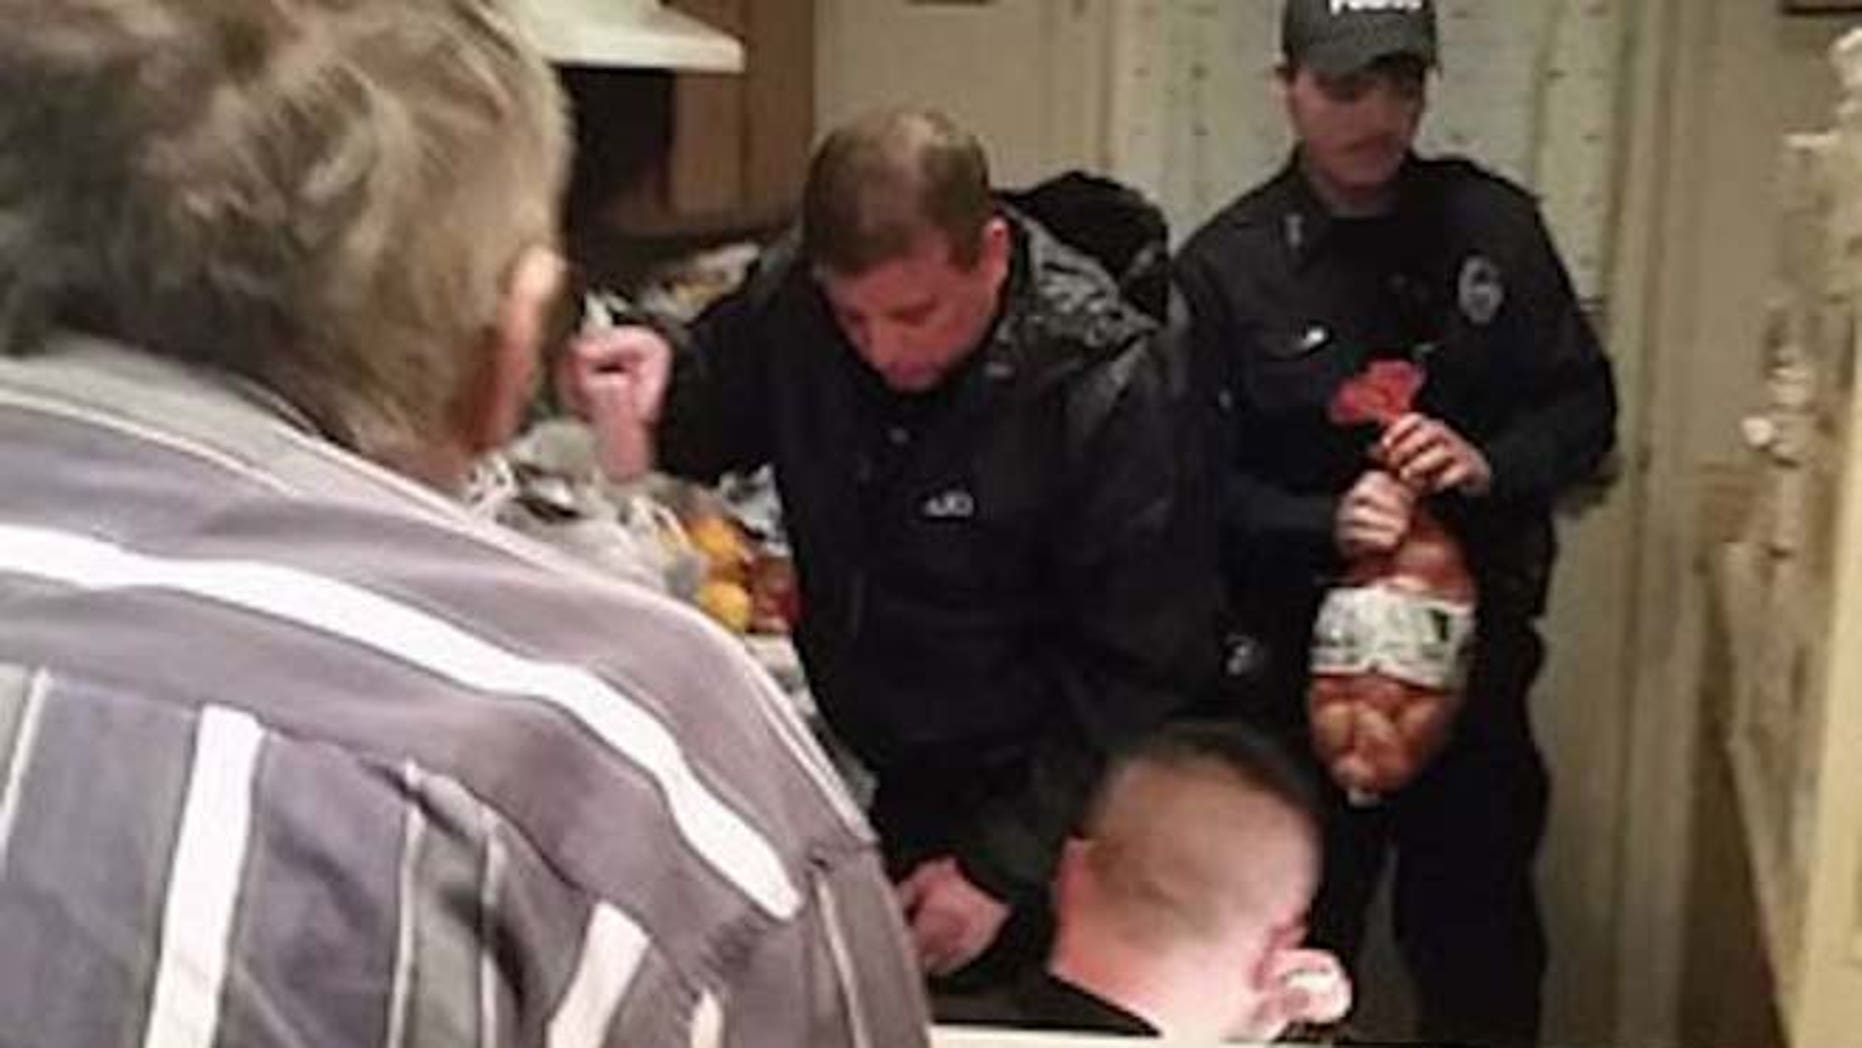 Police officers from the Mt. Pleasant Police Department delivered groceries to a 79-year-old man who told dispatchers he didn't eat for two days.